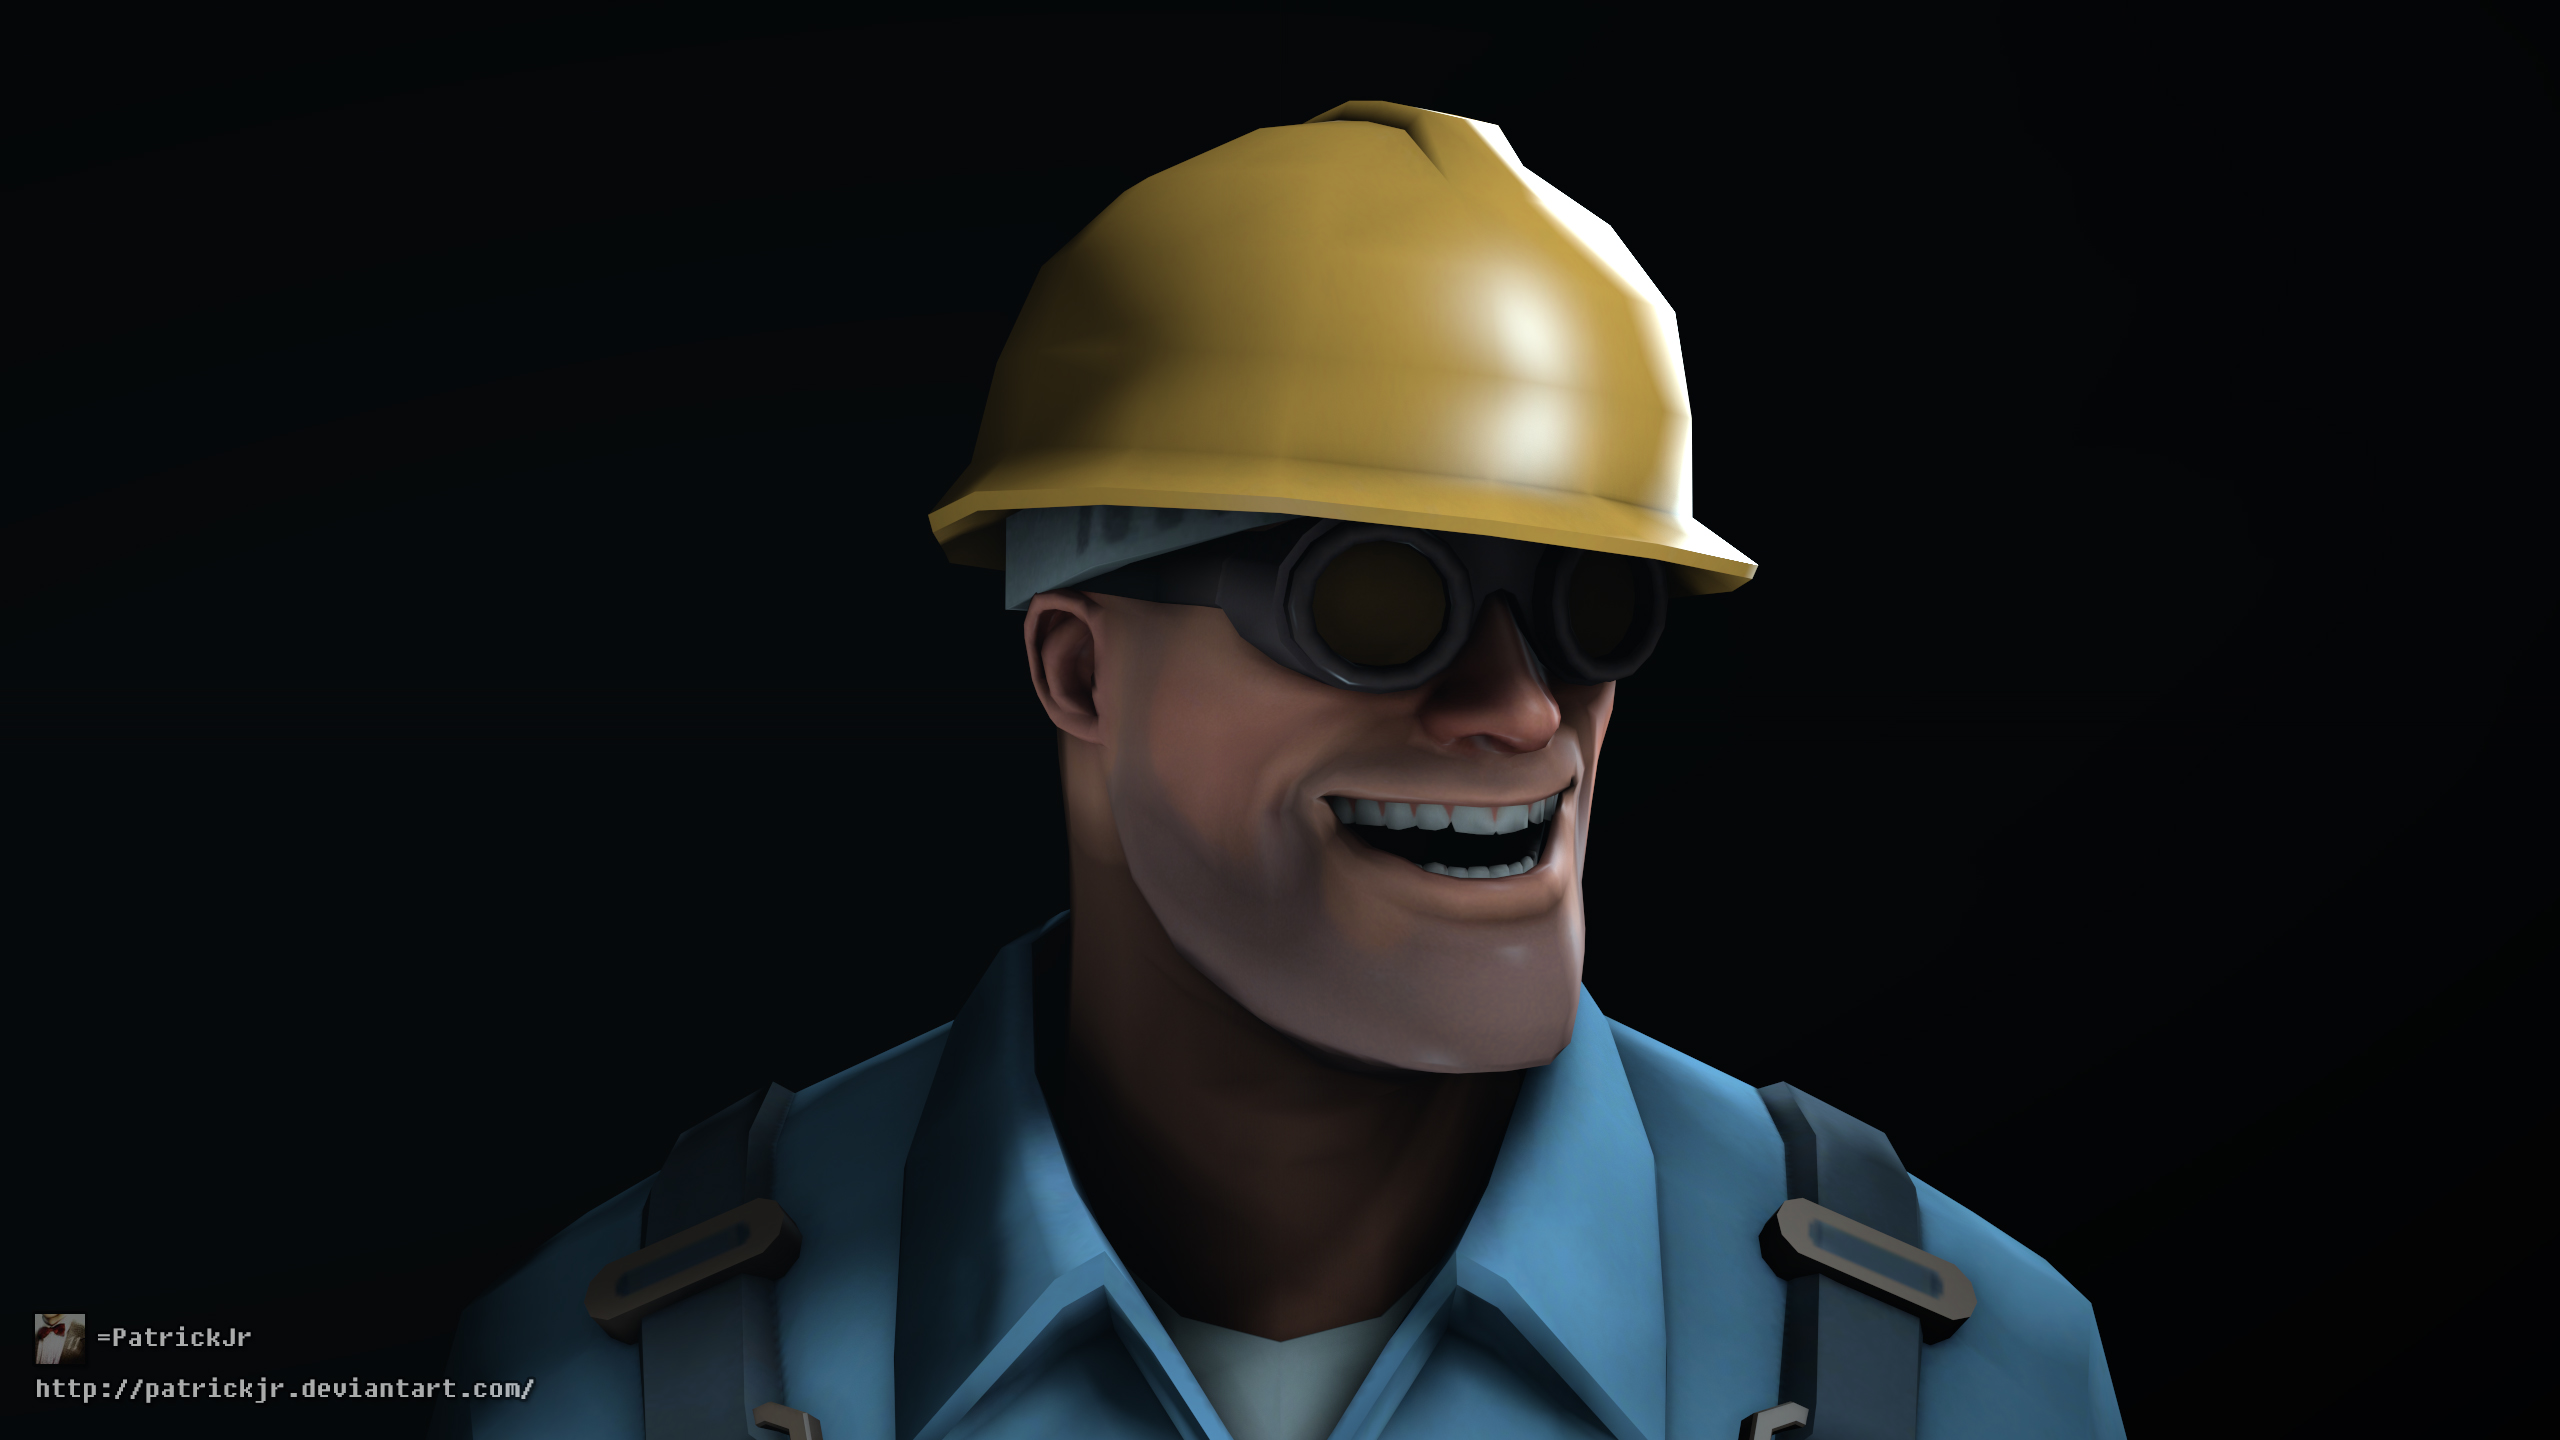 sfm poster meet the engineer blu by patrickjr on deviantart